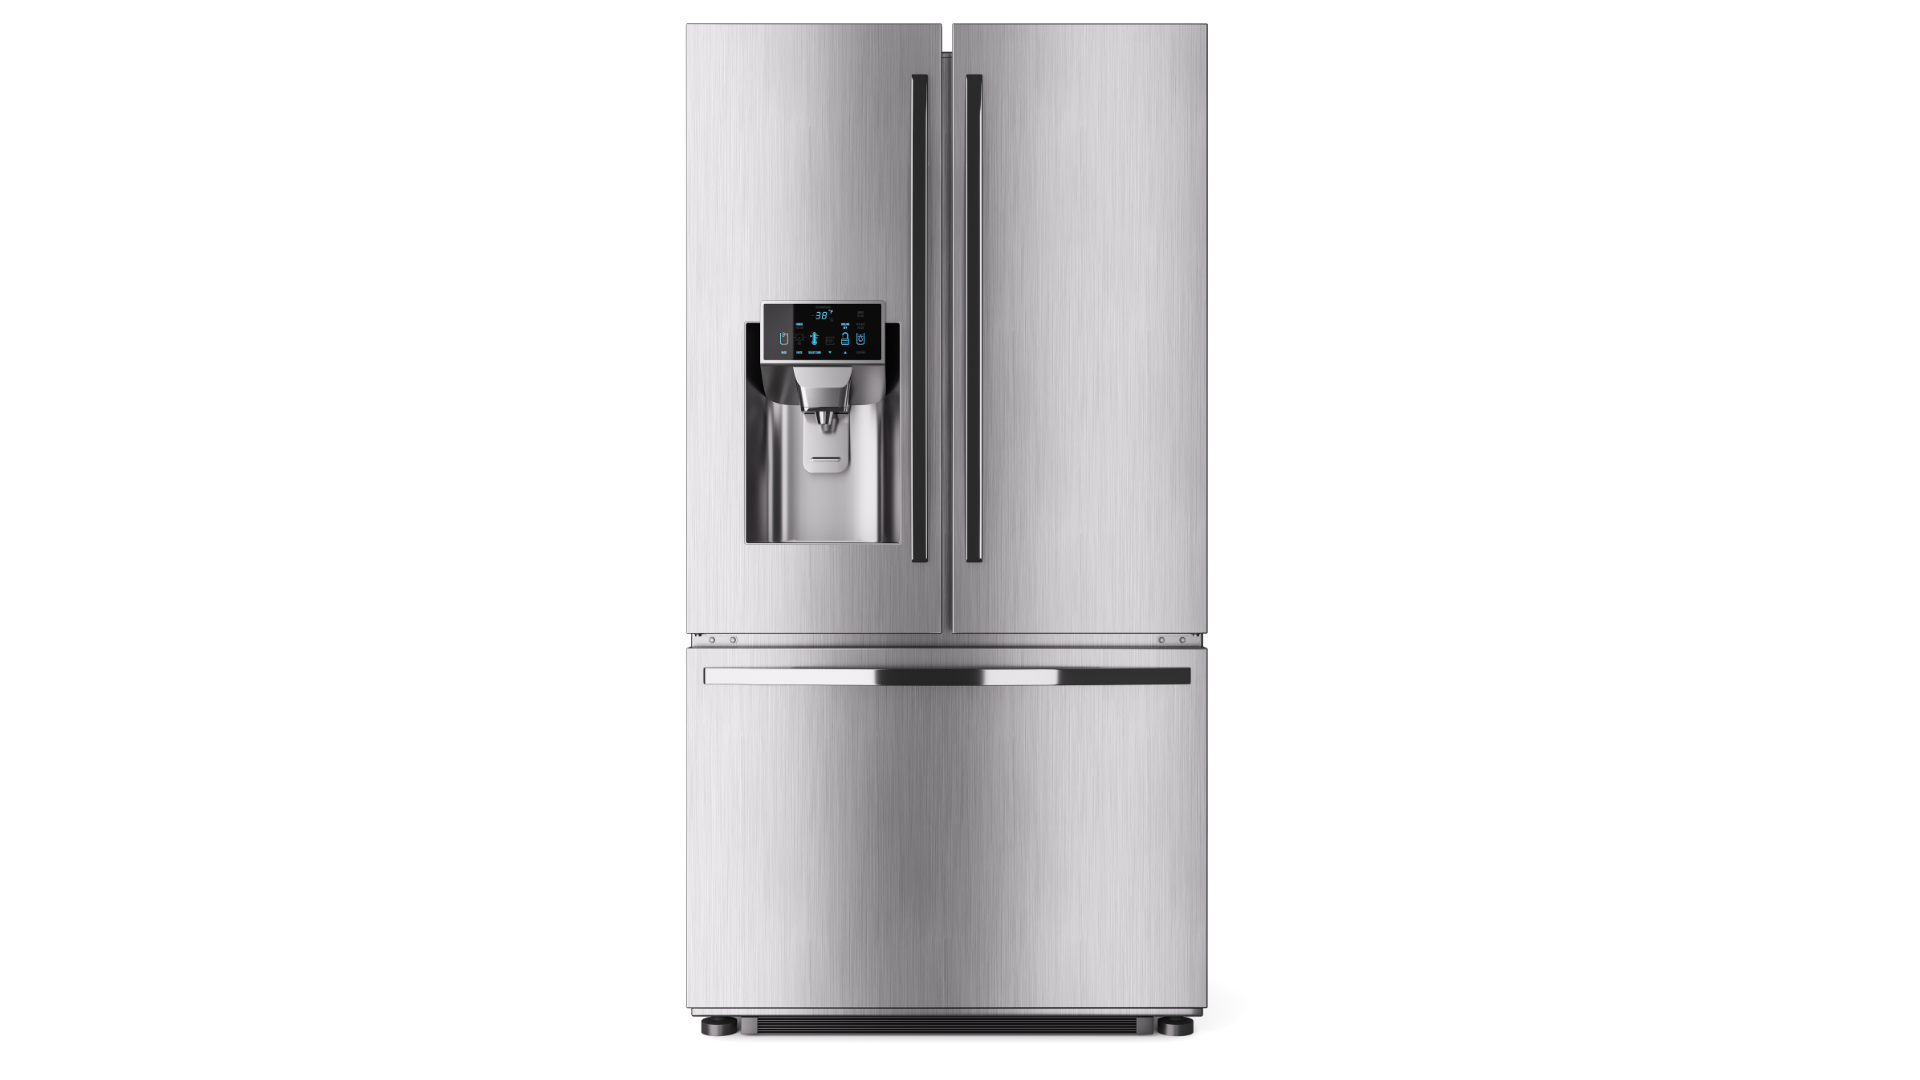 """Featured image for """"Samsung Refrigerator Not Cooling? How to Fix It"""""""